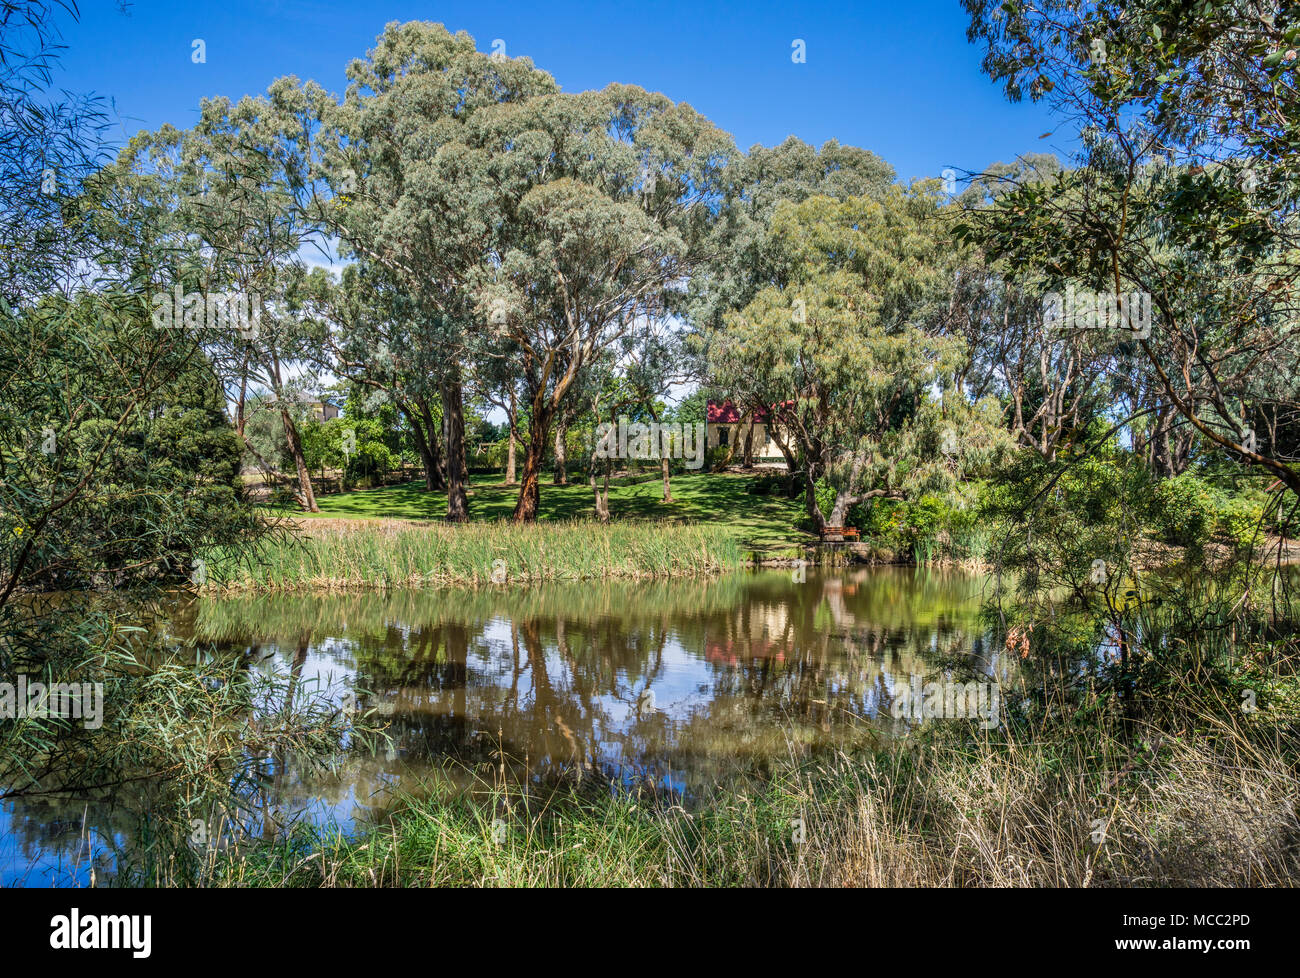 quaint little heritage church amongst the eucalypt trees and billabongs of Orange Botanic Gardens, Central West New South Wales, Australia - Stock Image